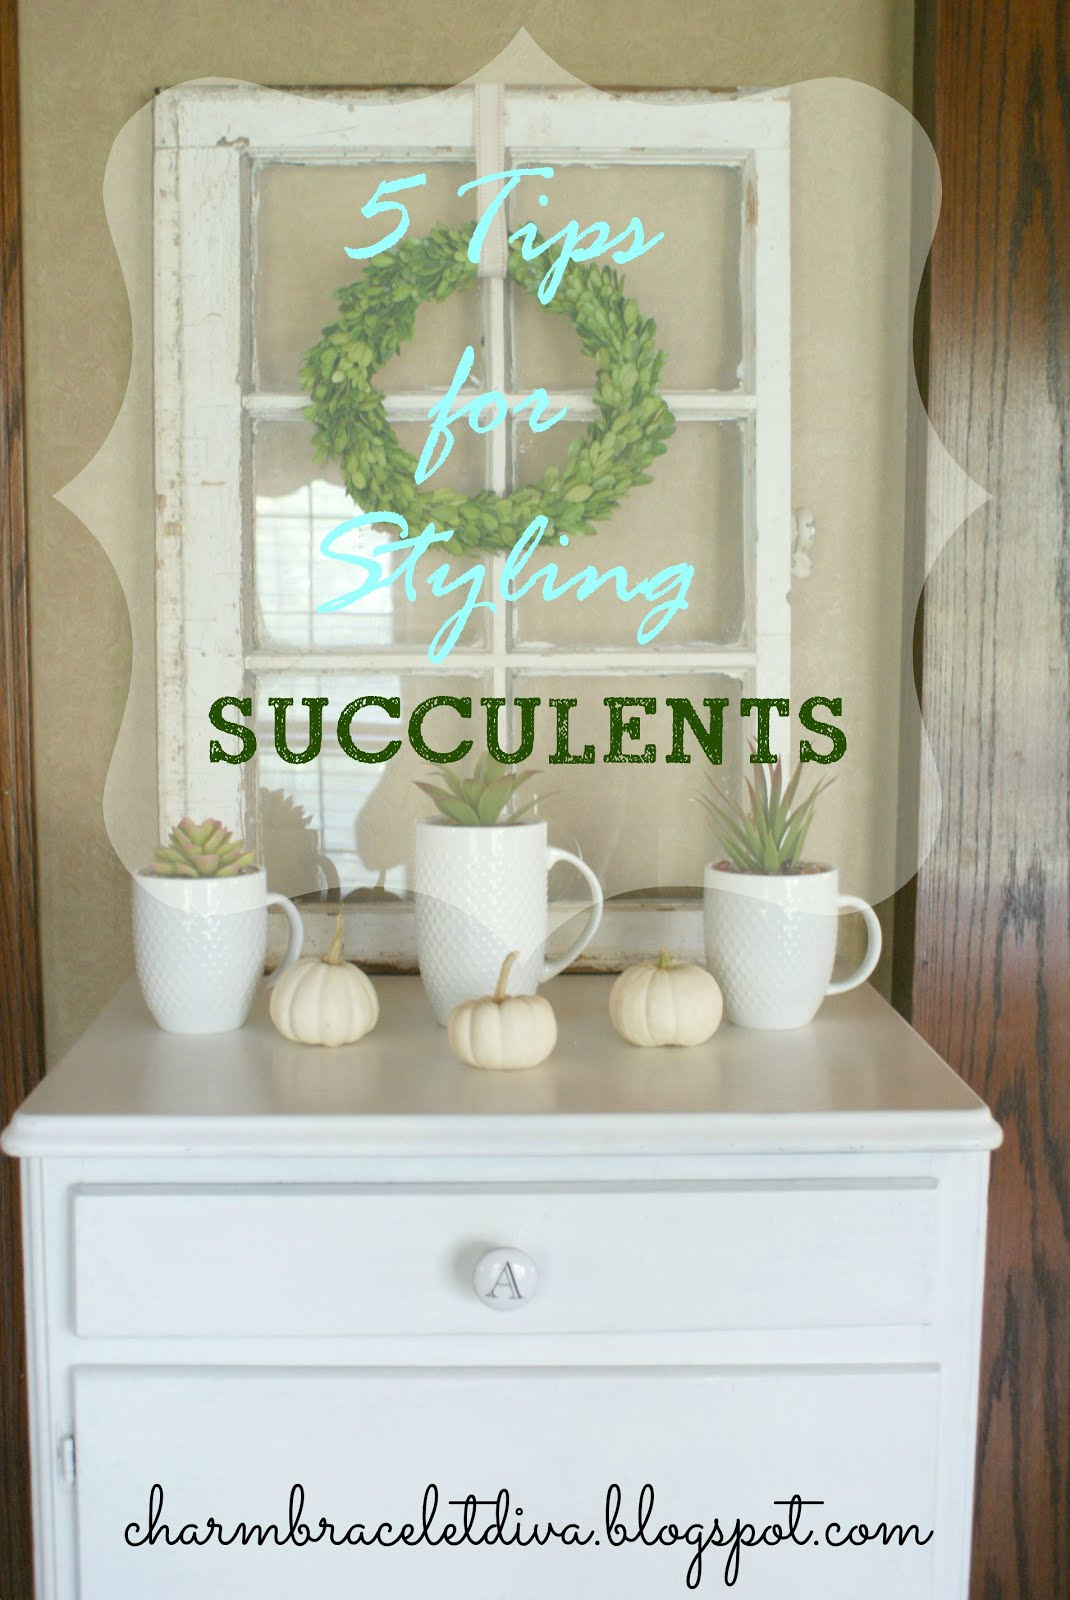 Secrets of Styling Succulents